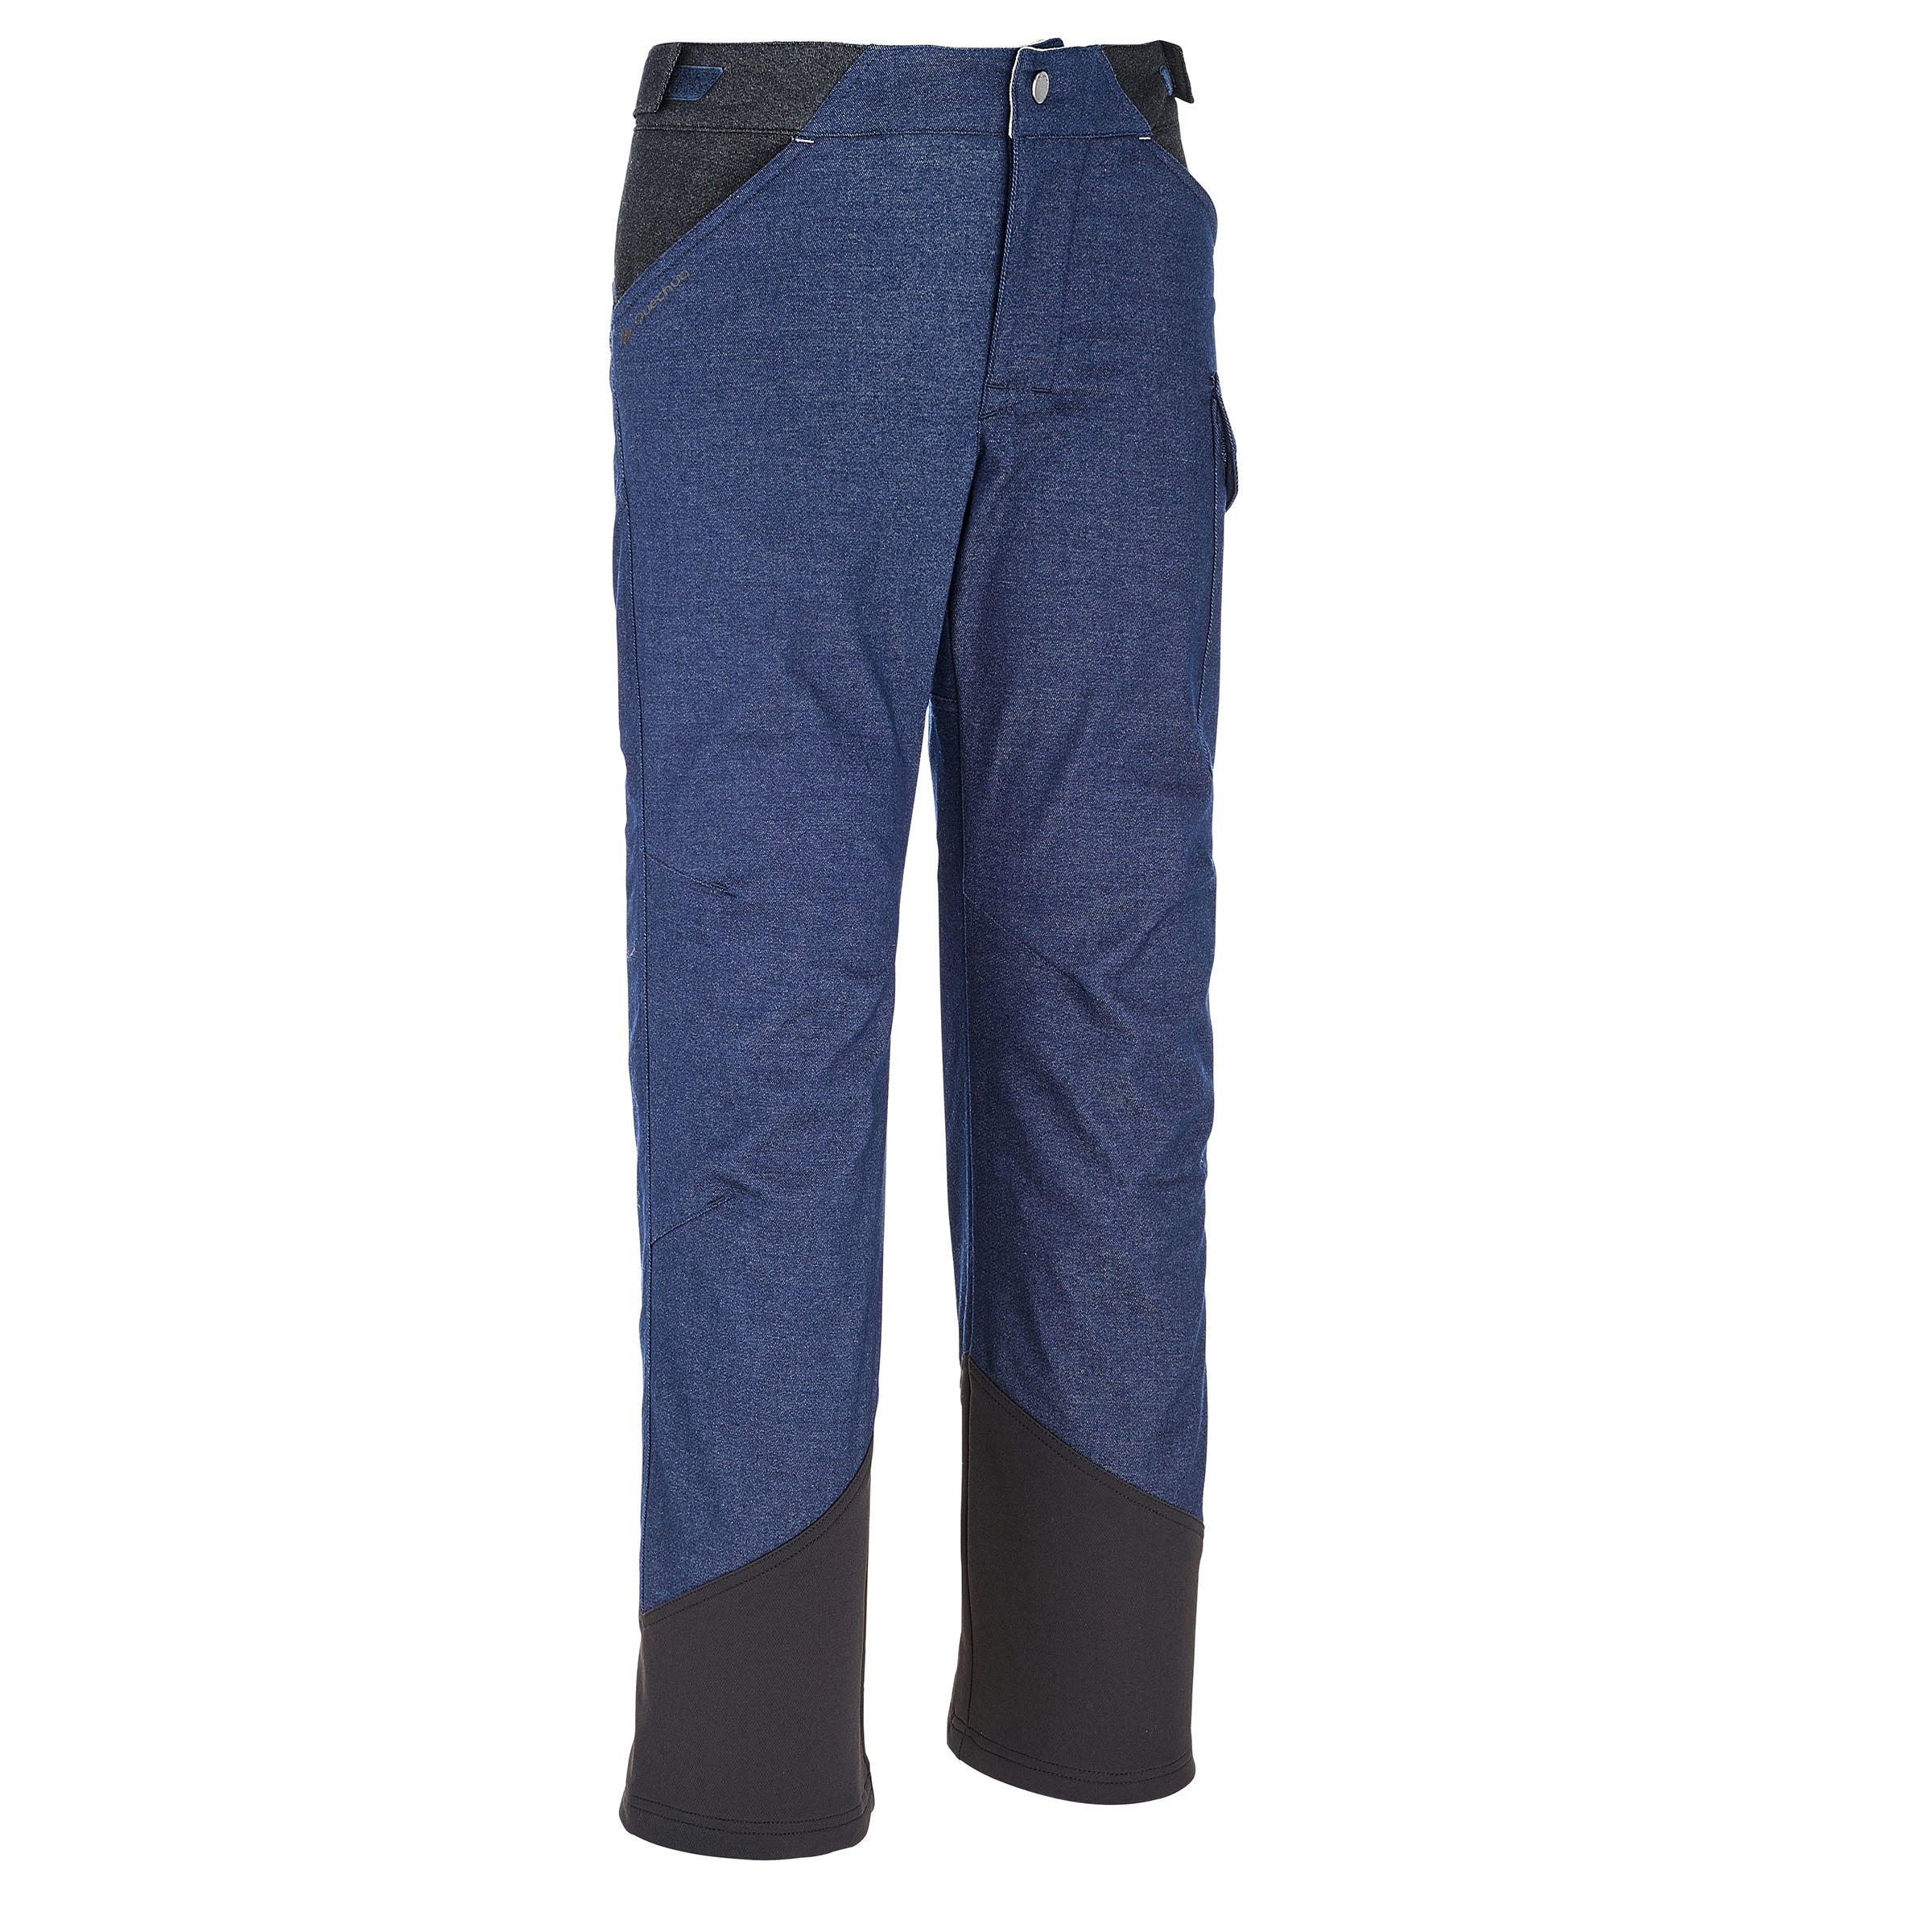 SH100 Warm Child's Snow Hiking Trousers - Blue